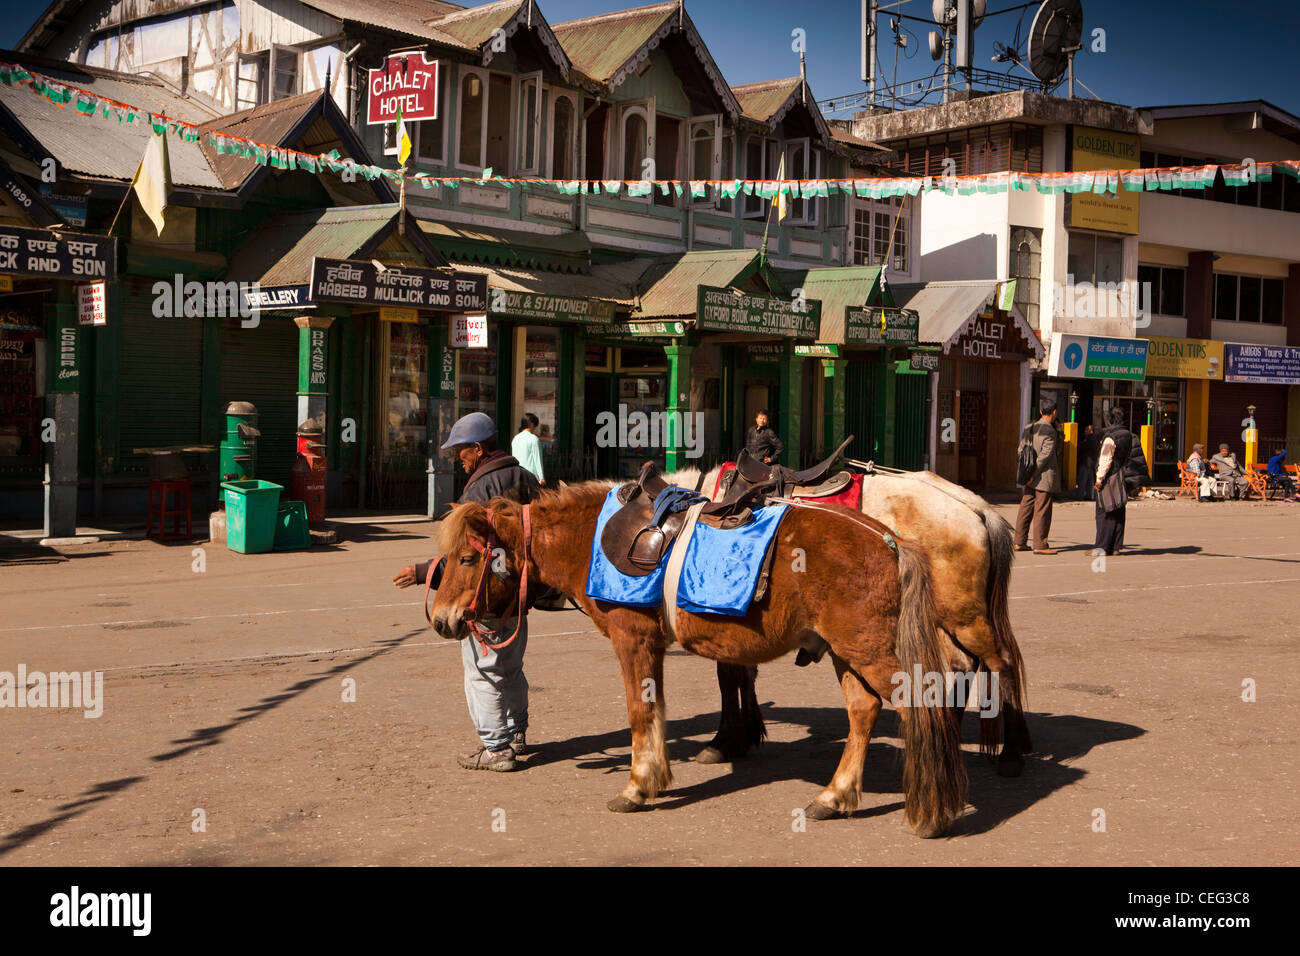 India, West Bengal, Darjeeling, Chowrasta, ponies plying for trade in open square above the Mall - Stock Image